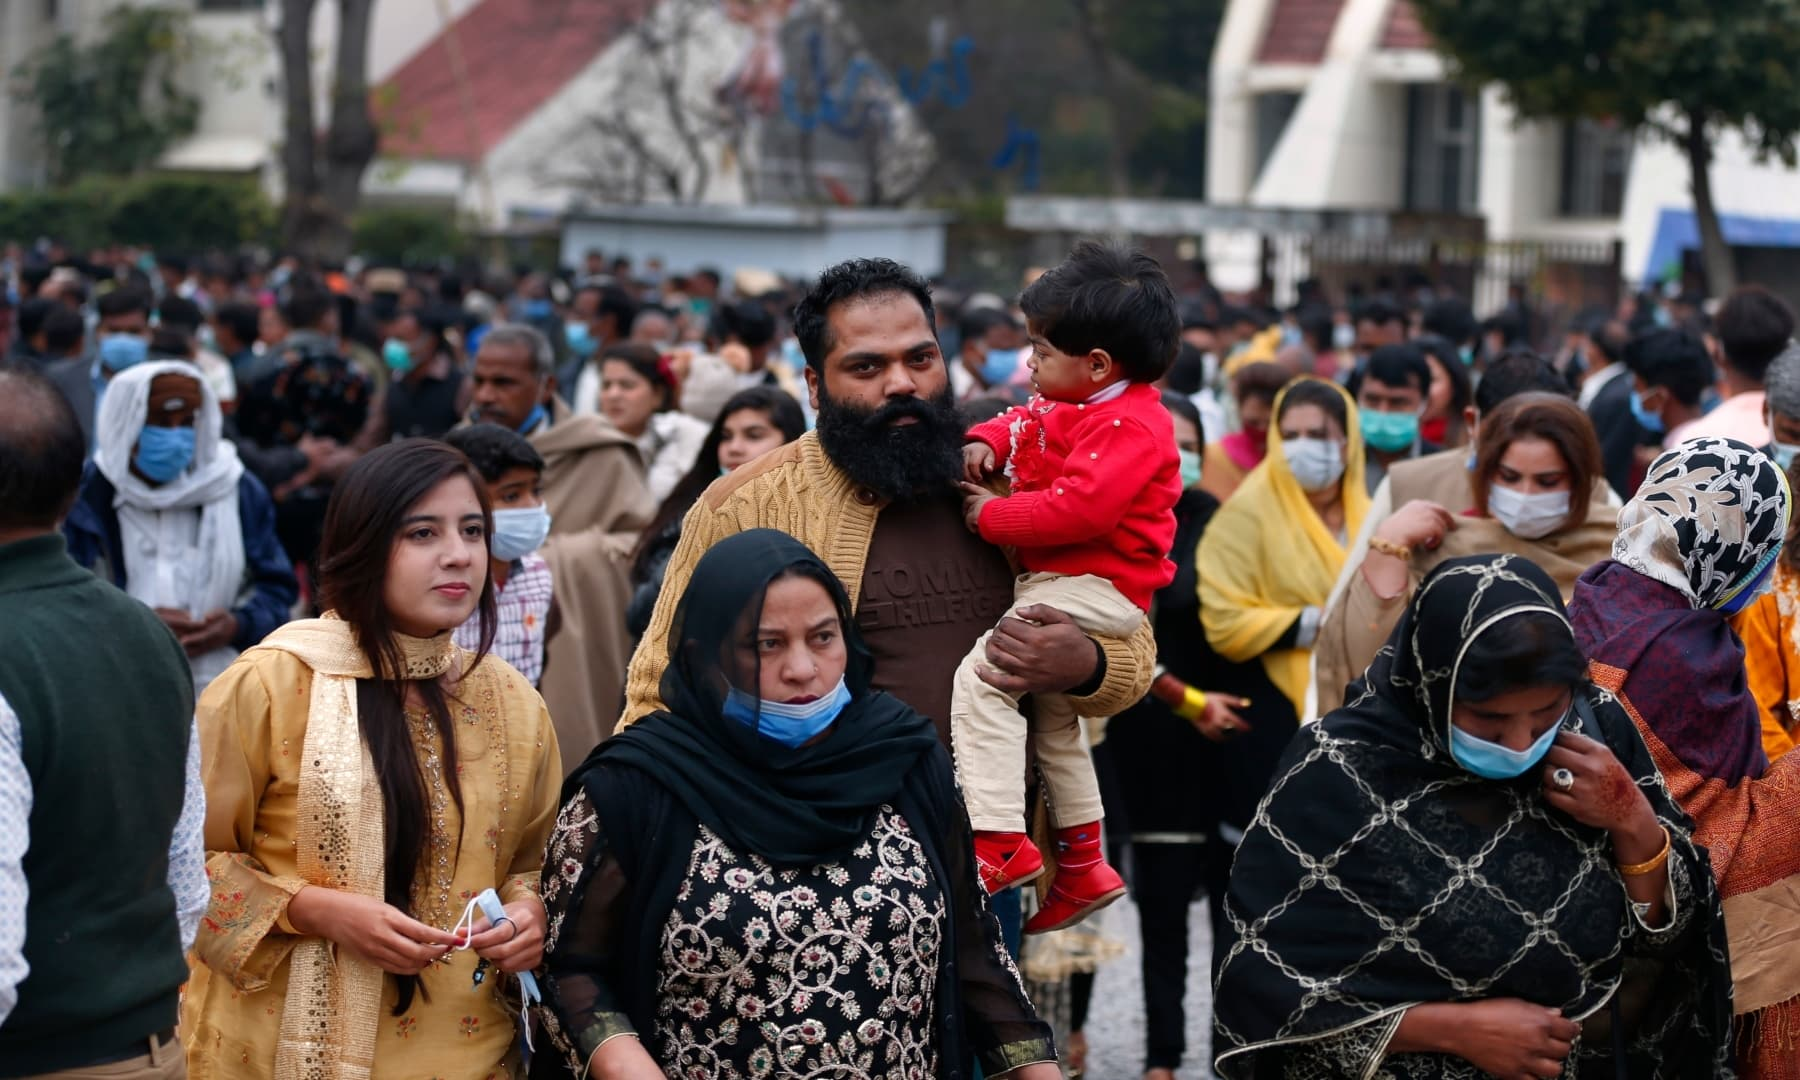 Christians leave after attending a Christmas mass in Our Lady of Fatima Church in Islamabad on Friday, Dec 25. — AP